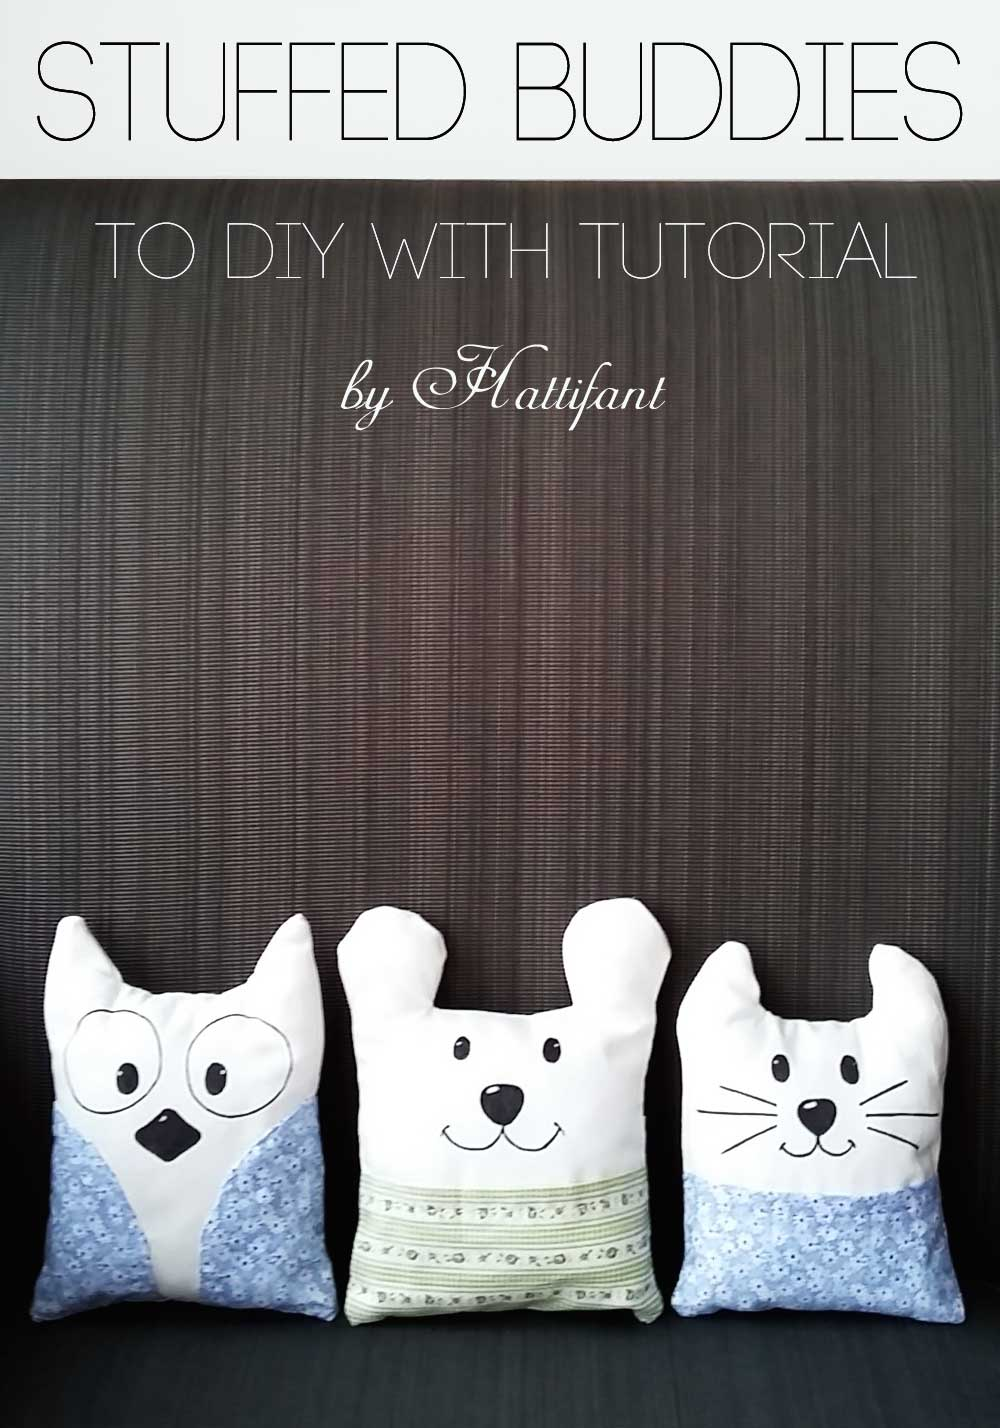 Hattifant sews stuffed animals the easy way